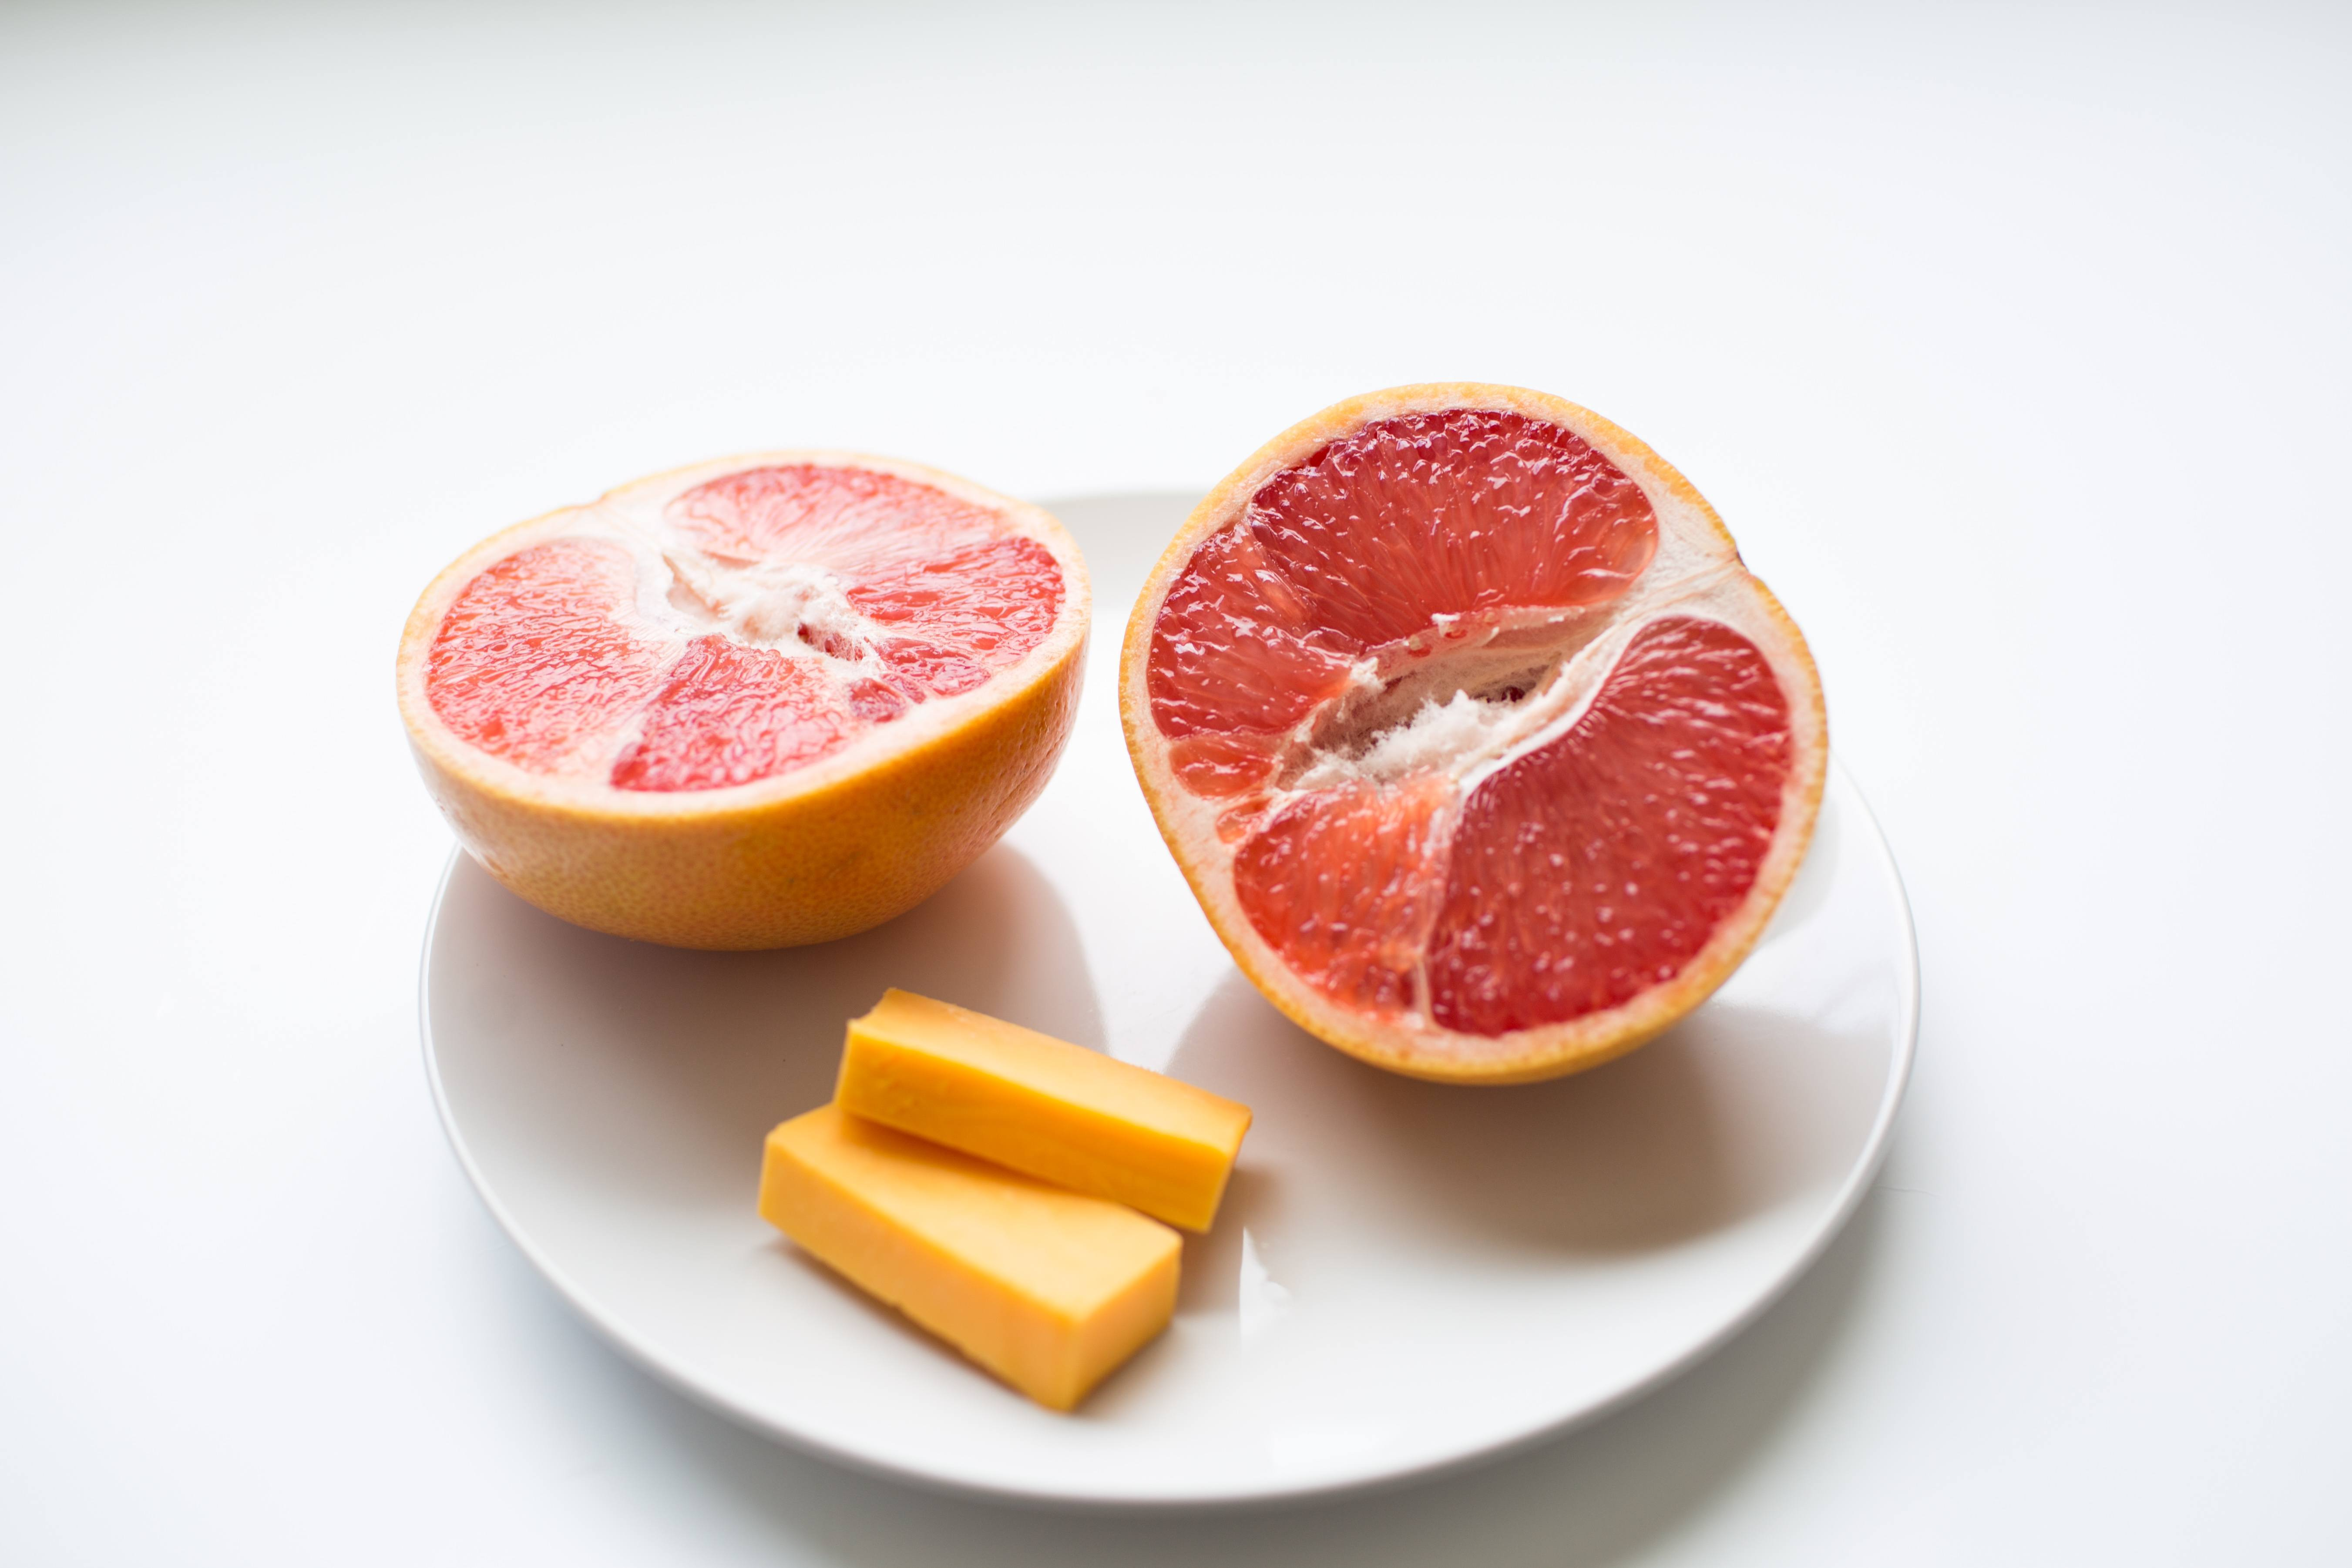 100 calorie snack grapefruit and cheddar cheese